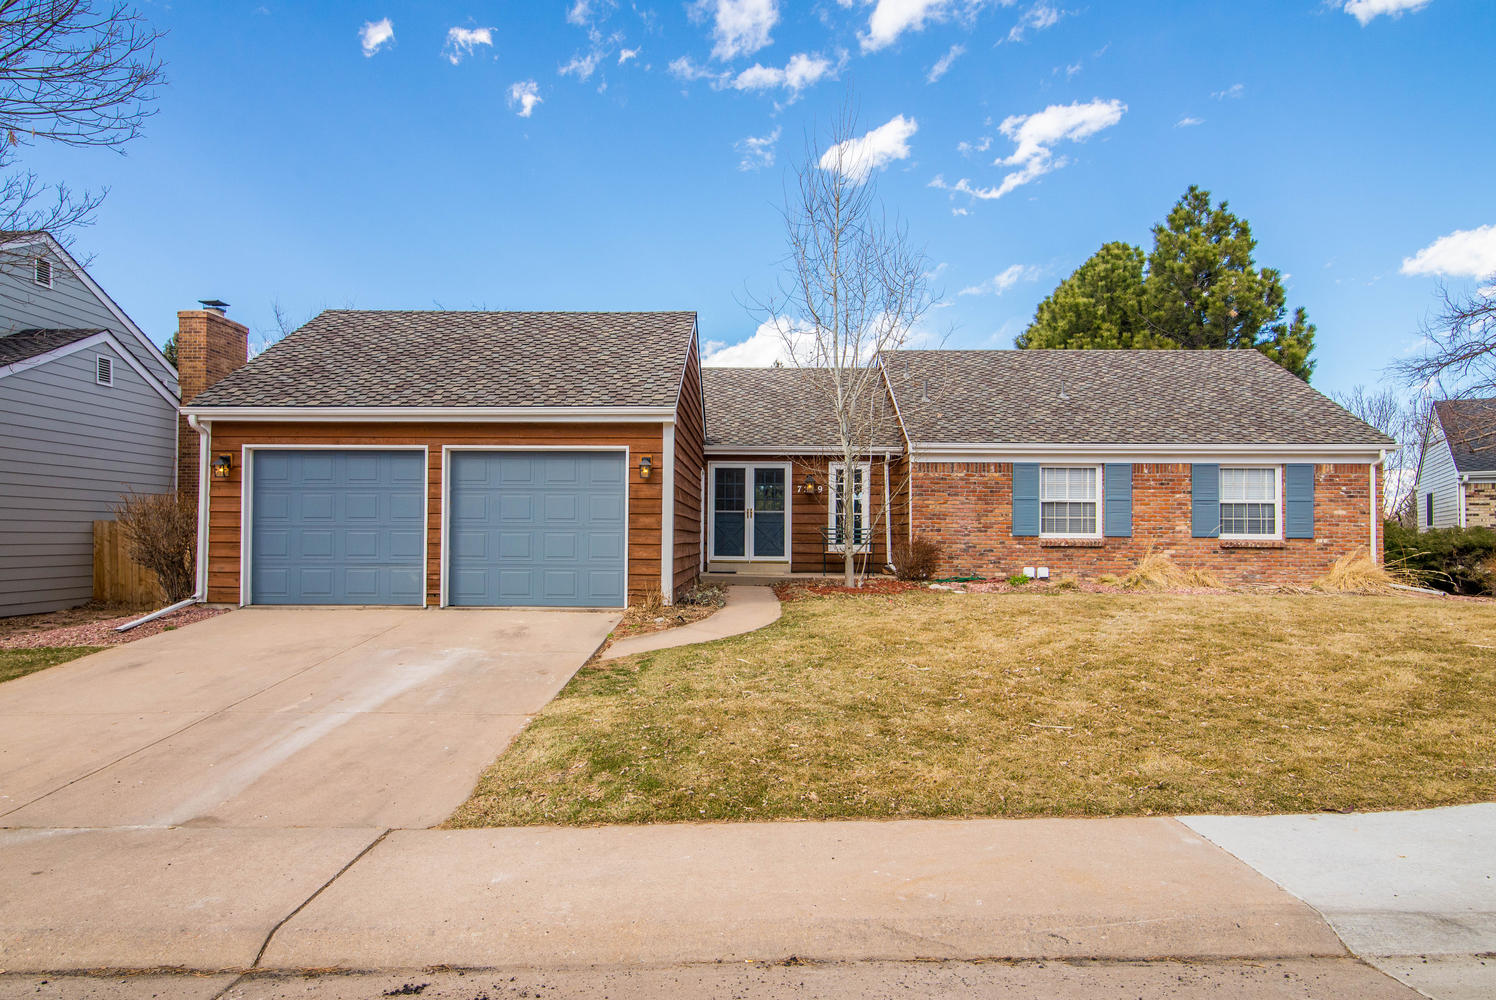 Single Family Home for Active at Walk-out ranch home in Homestead Willows 7259 E Costilla Dr Centennial, Colorado 80112 United States